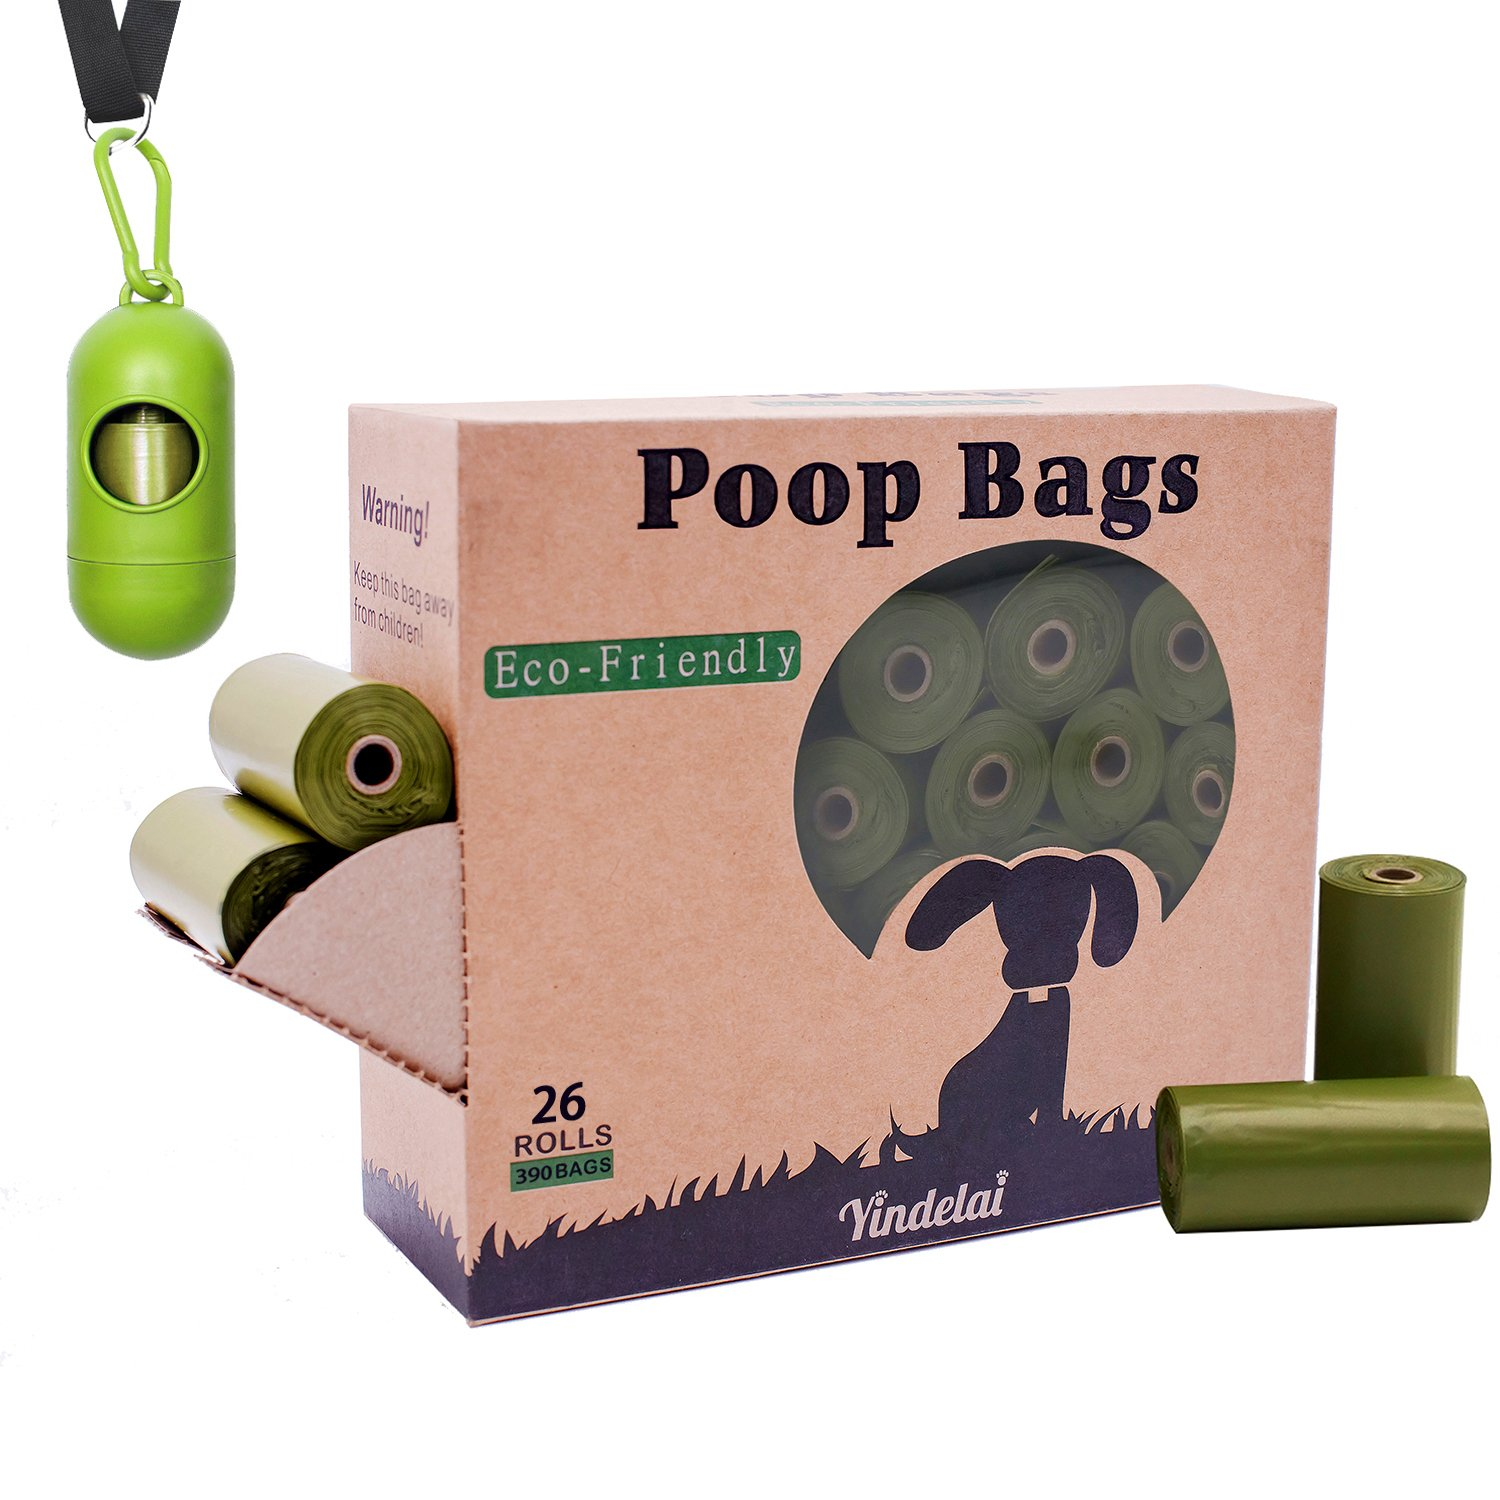 BOTEWO Dog Poop Bags with Dispenser, 390 Count/26 Rolls Scented Dog Poop Pickup Bags Biodegradable